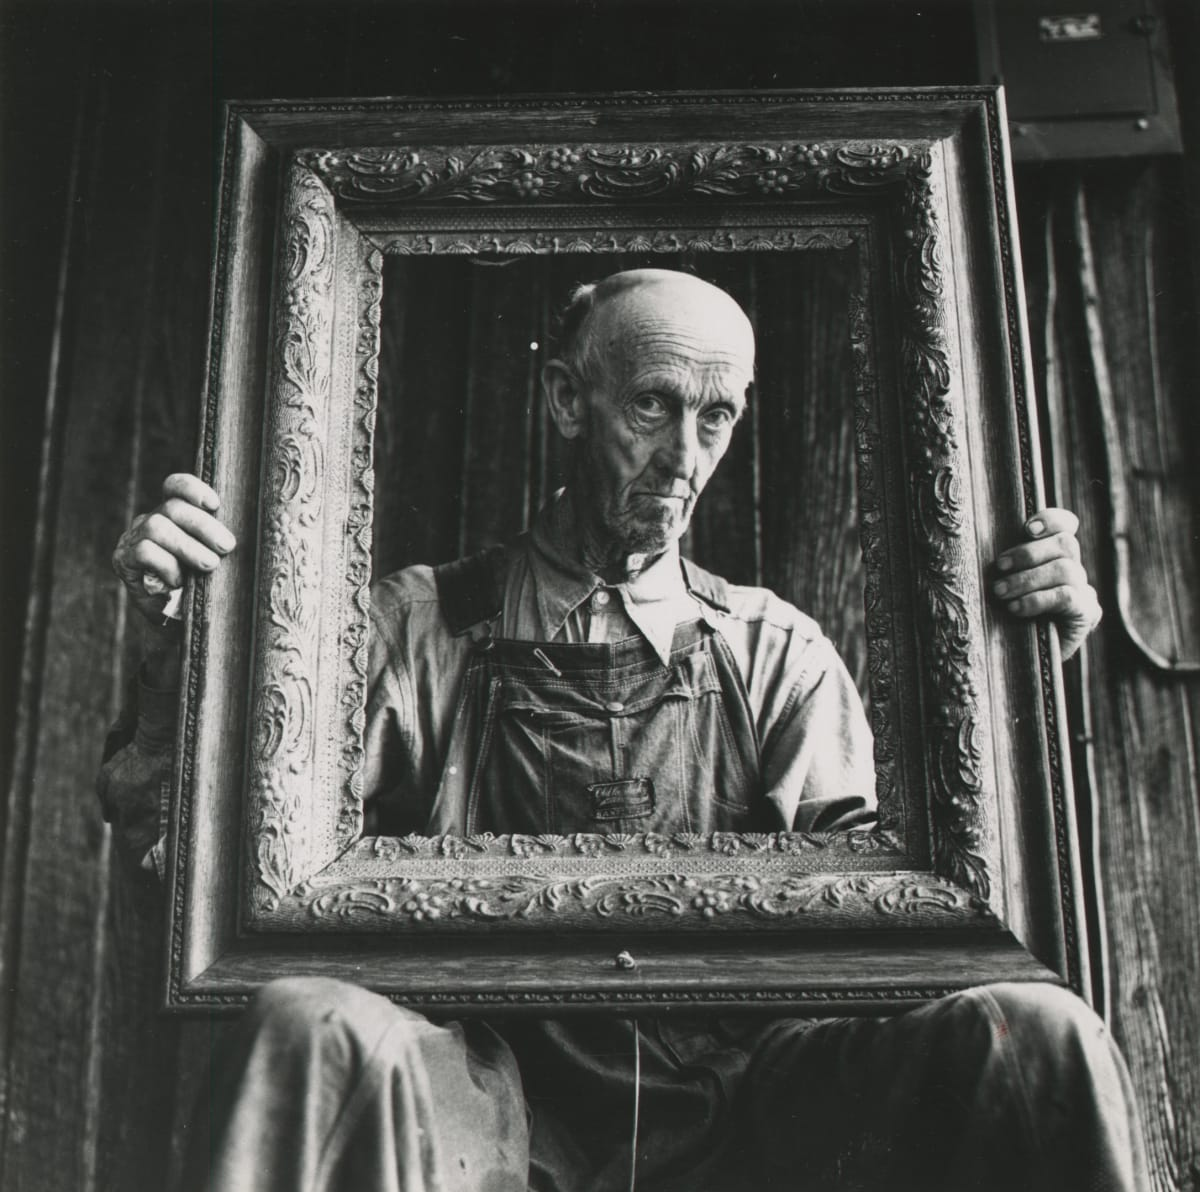 Arthur Tress, Farmer and Picture Frame, NC, 1968